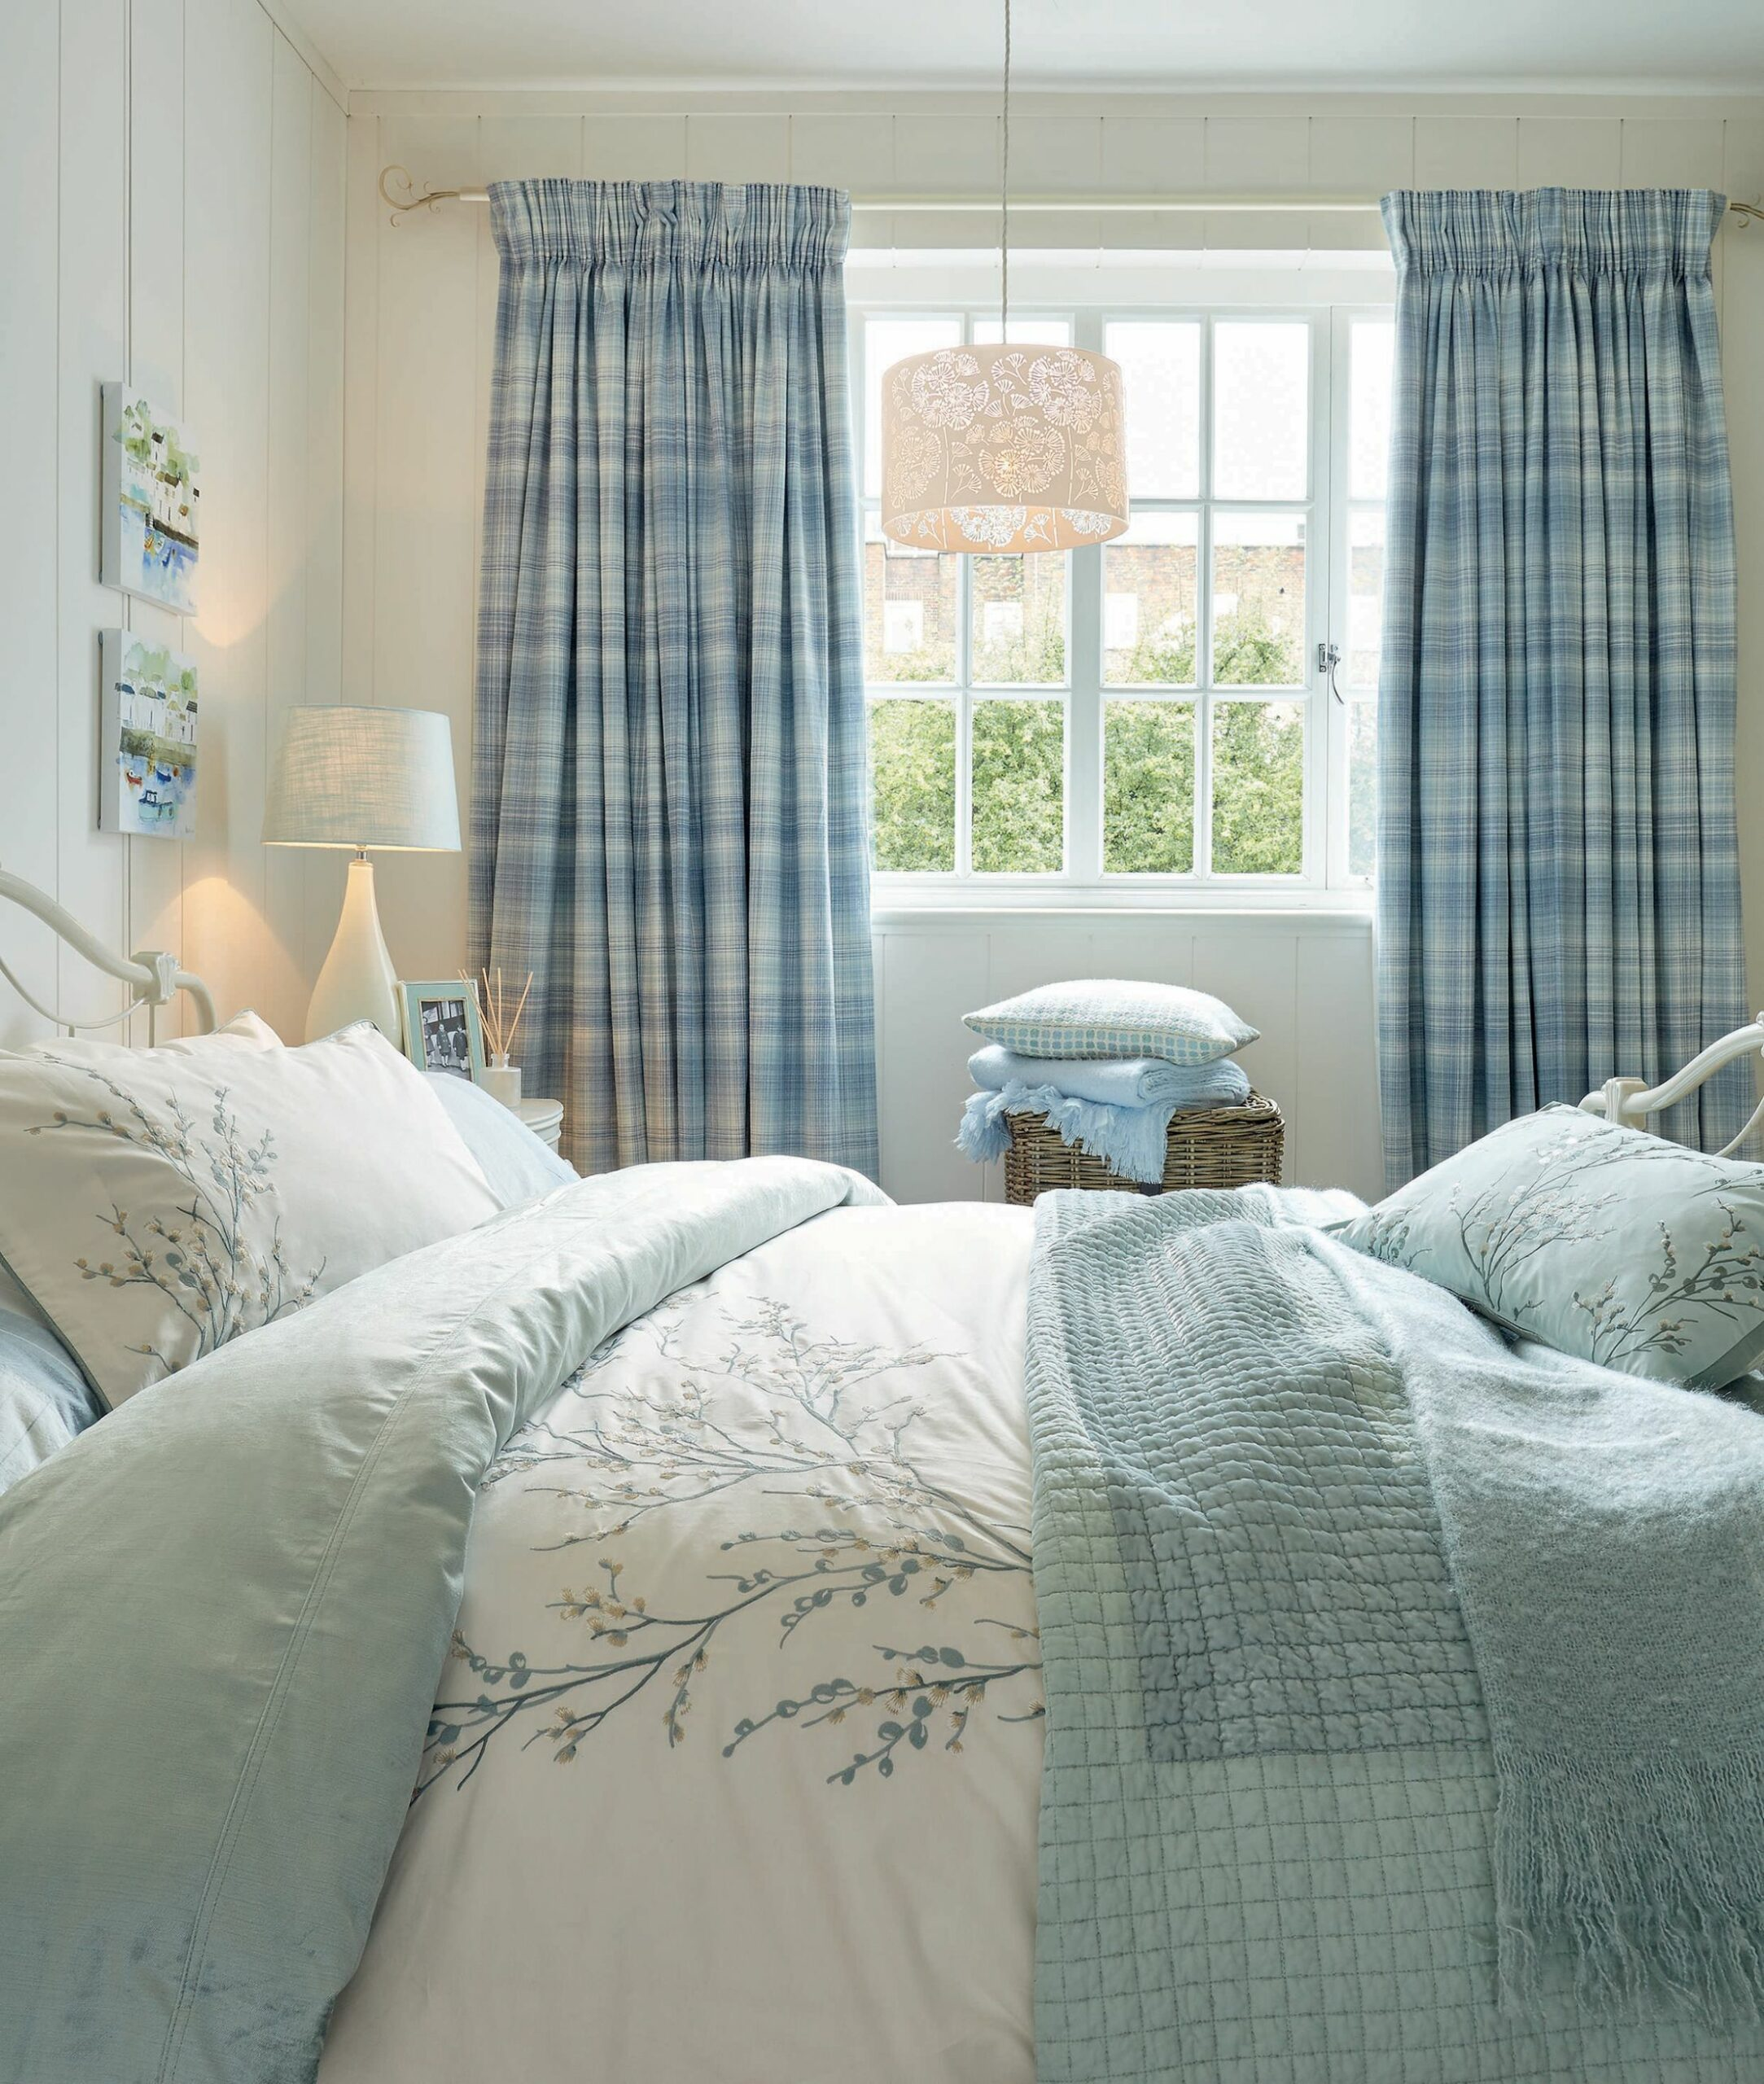 Bedroom Ideas To Fall In Love With - bedroom ideas laura ashley